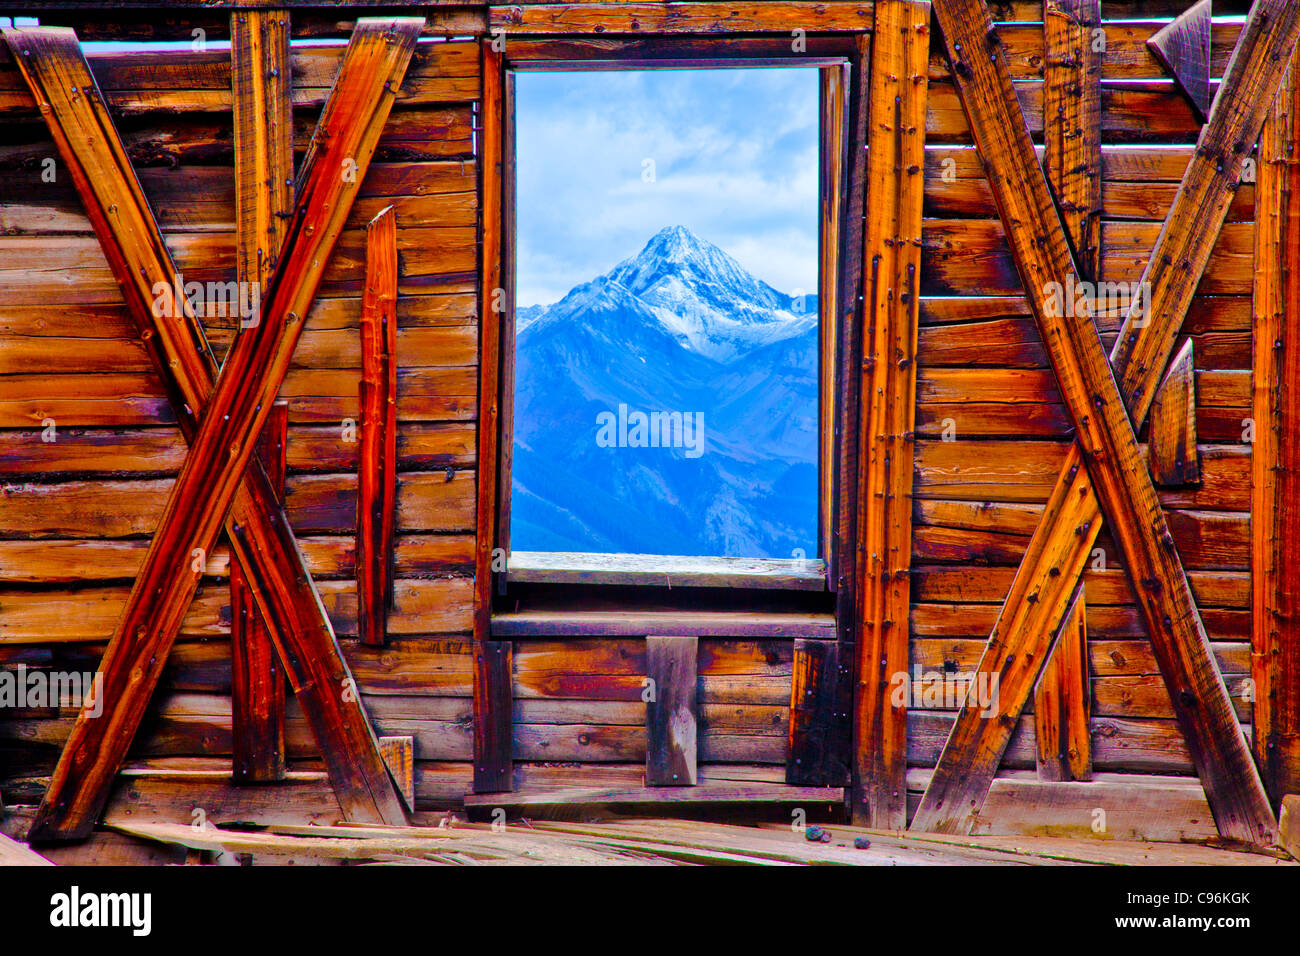 Wilson Peak seen through ghost town window, Alta Ghost Town, Colorado, Uncompahgre National Forest, San Juan Mountains - Stock Image